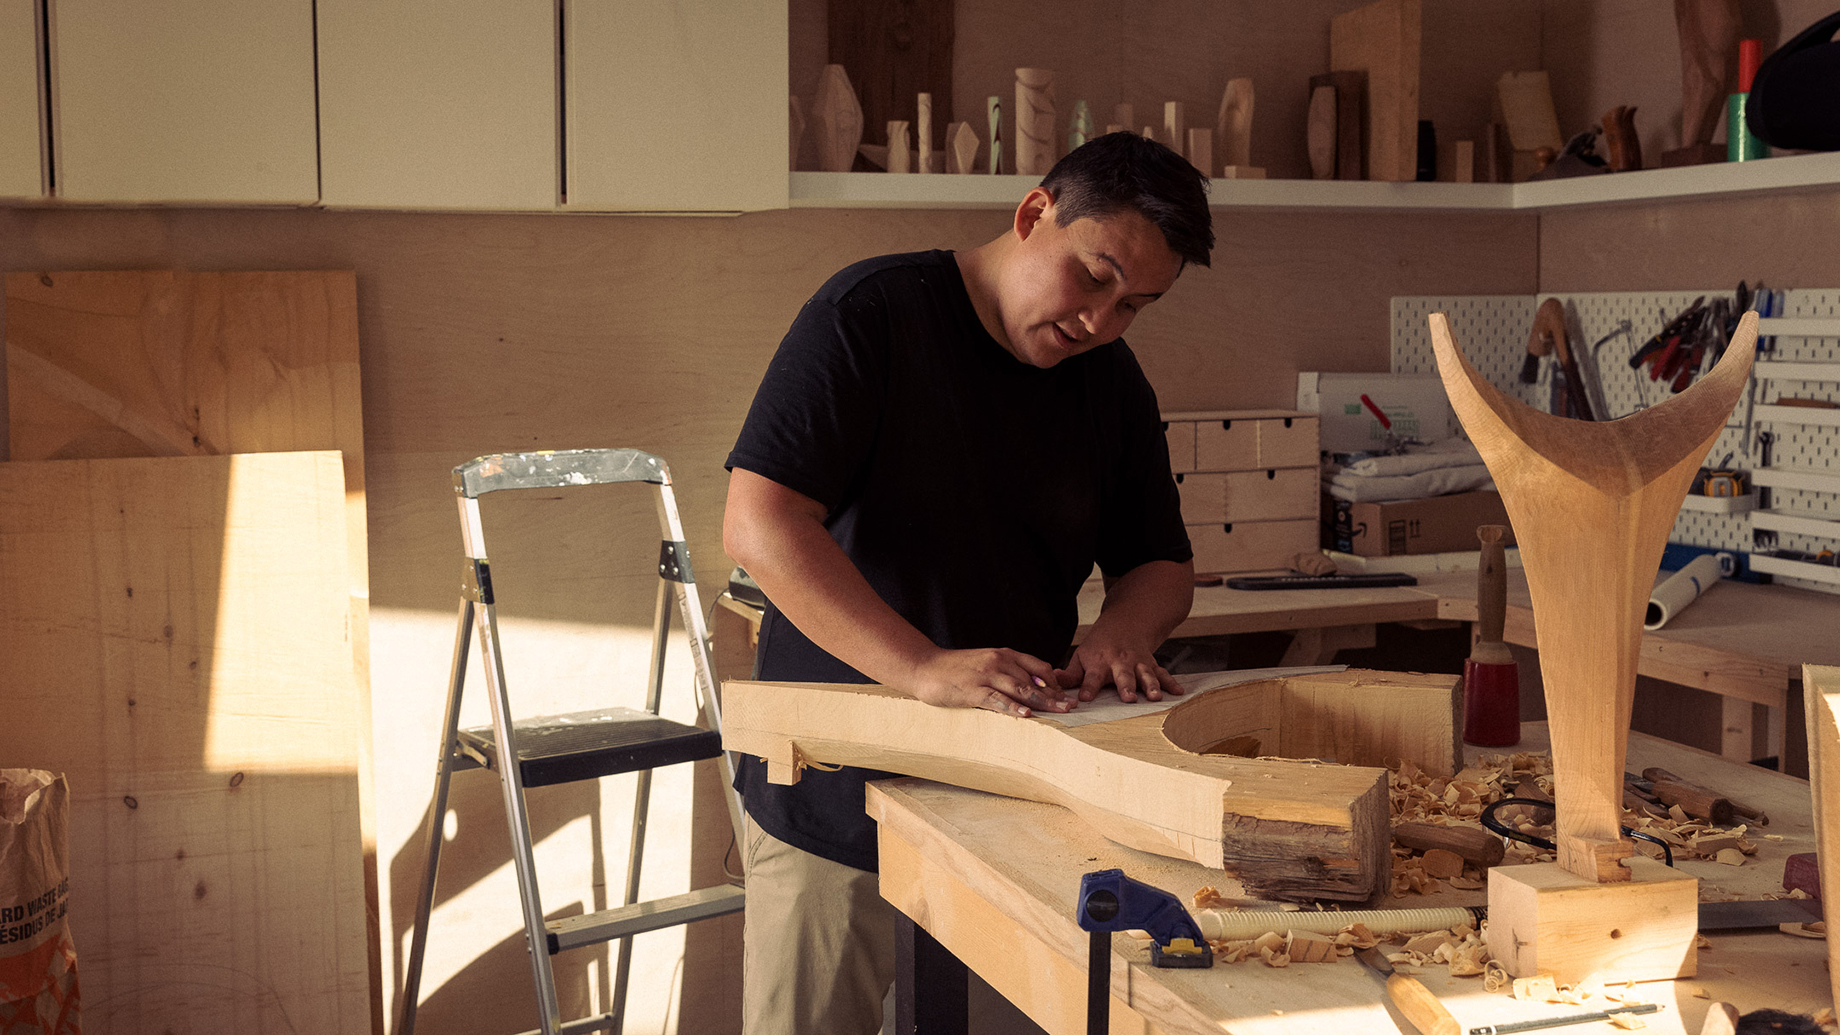 Woodworker captured by Christian Tisdale for Makers series